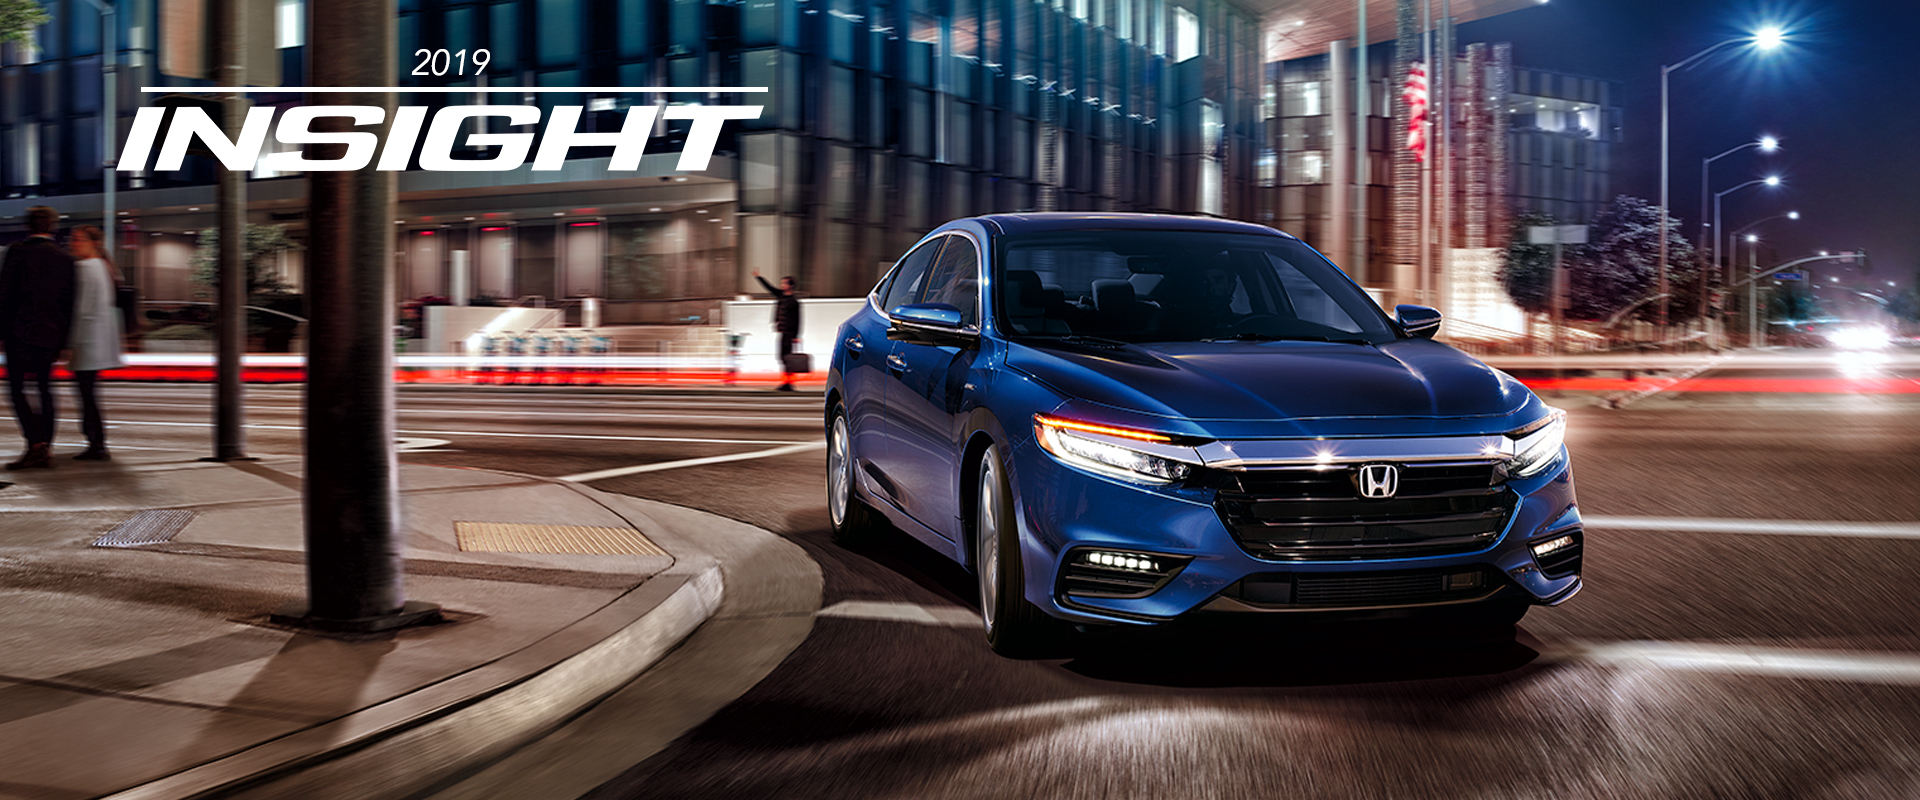 Honda Dealerships In Alabama >> 2019 Honda Insight Central Alabama Honda Dealers